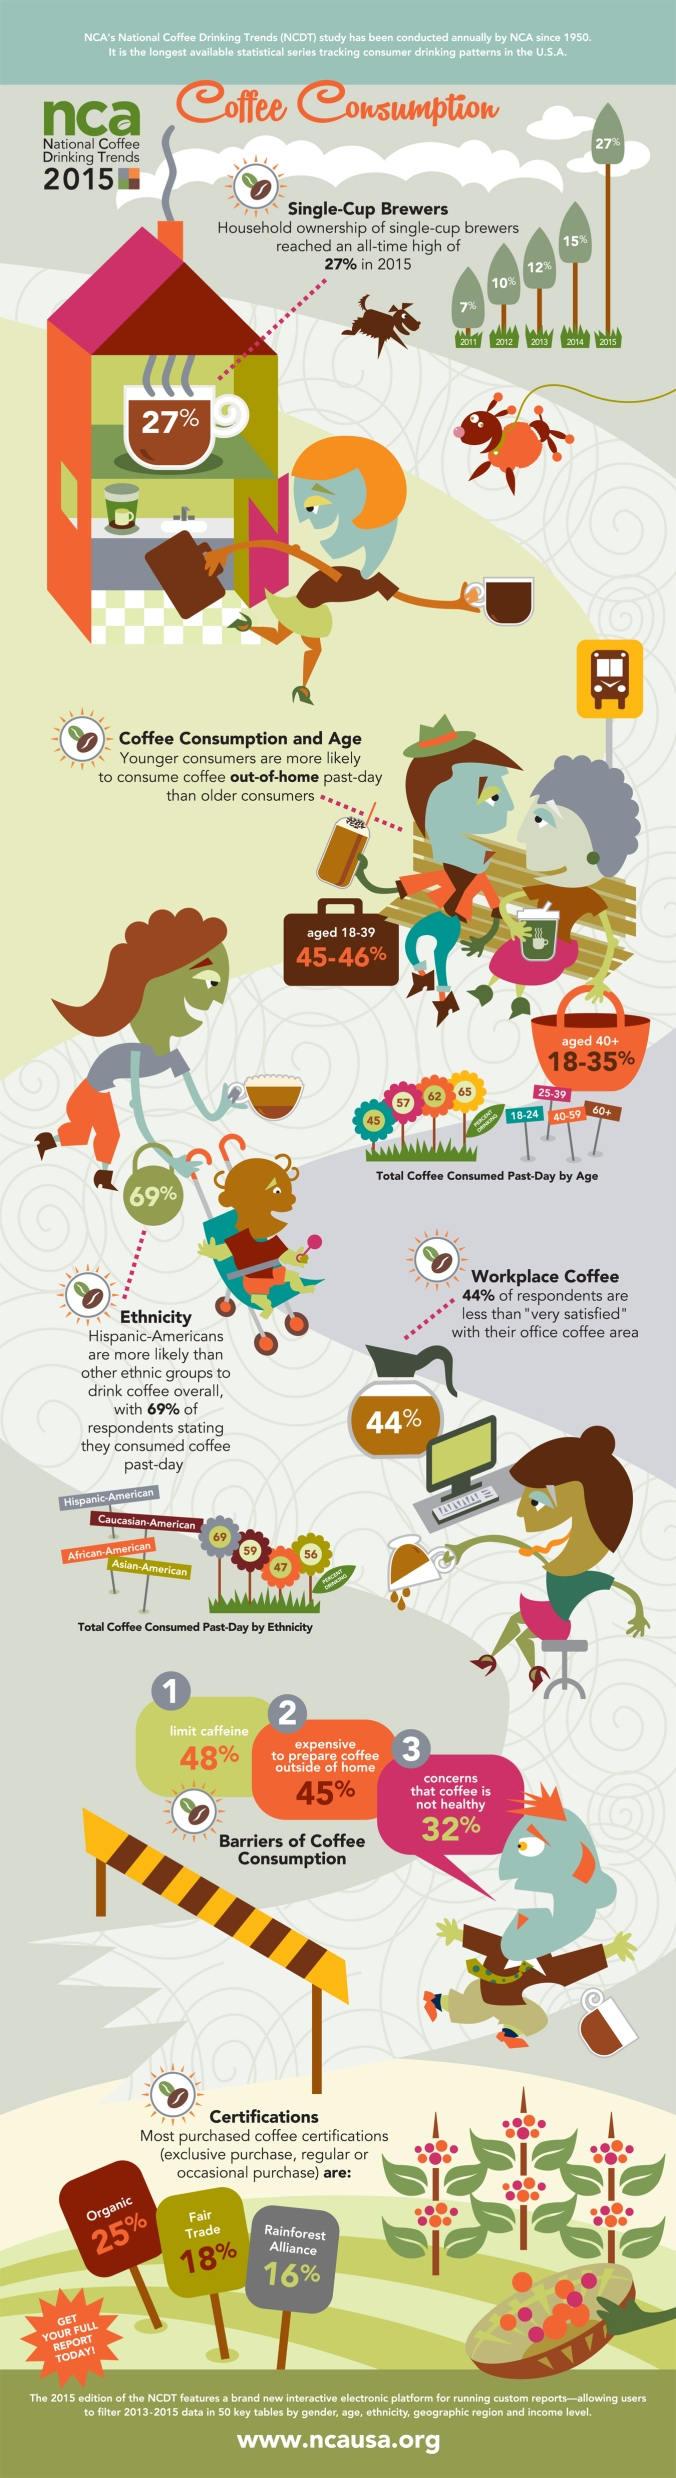 2015 National Coffee Drinking Trends Infographic